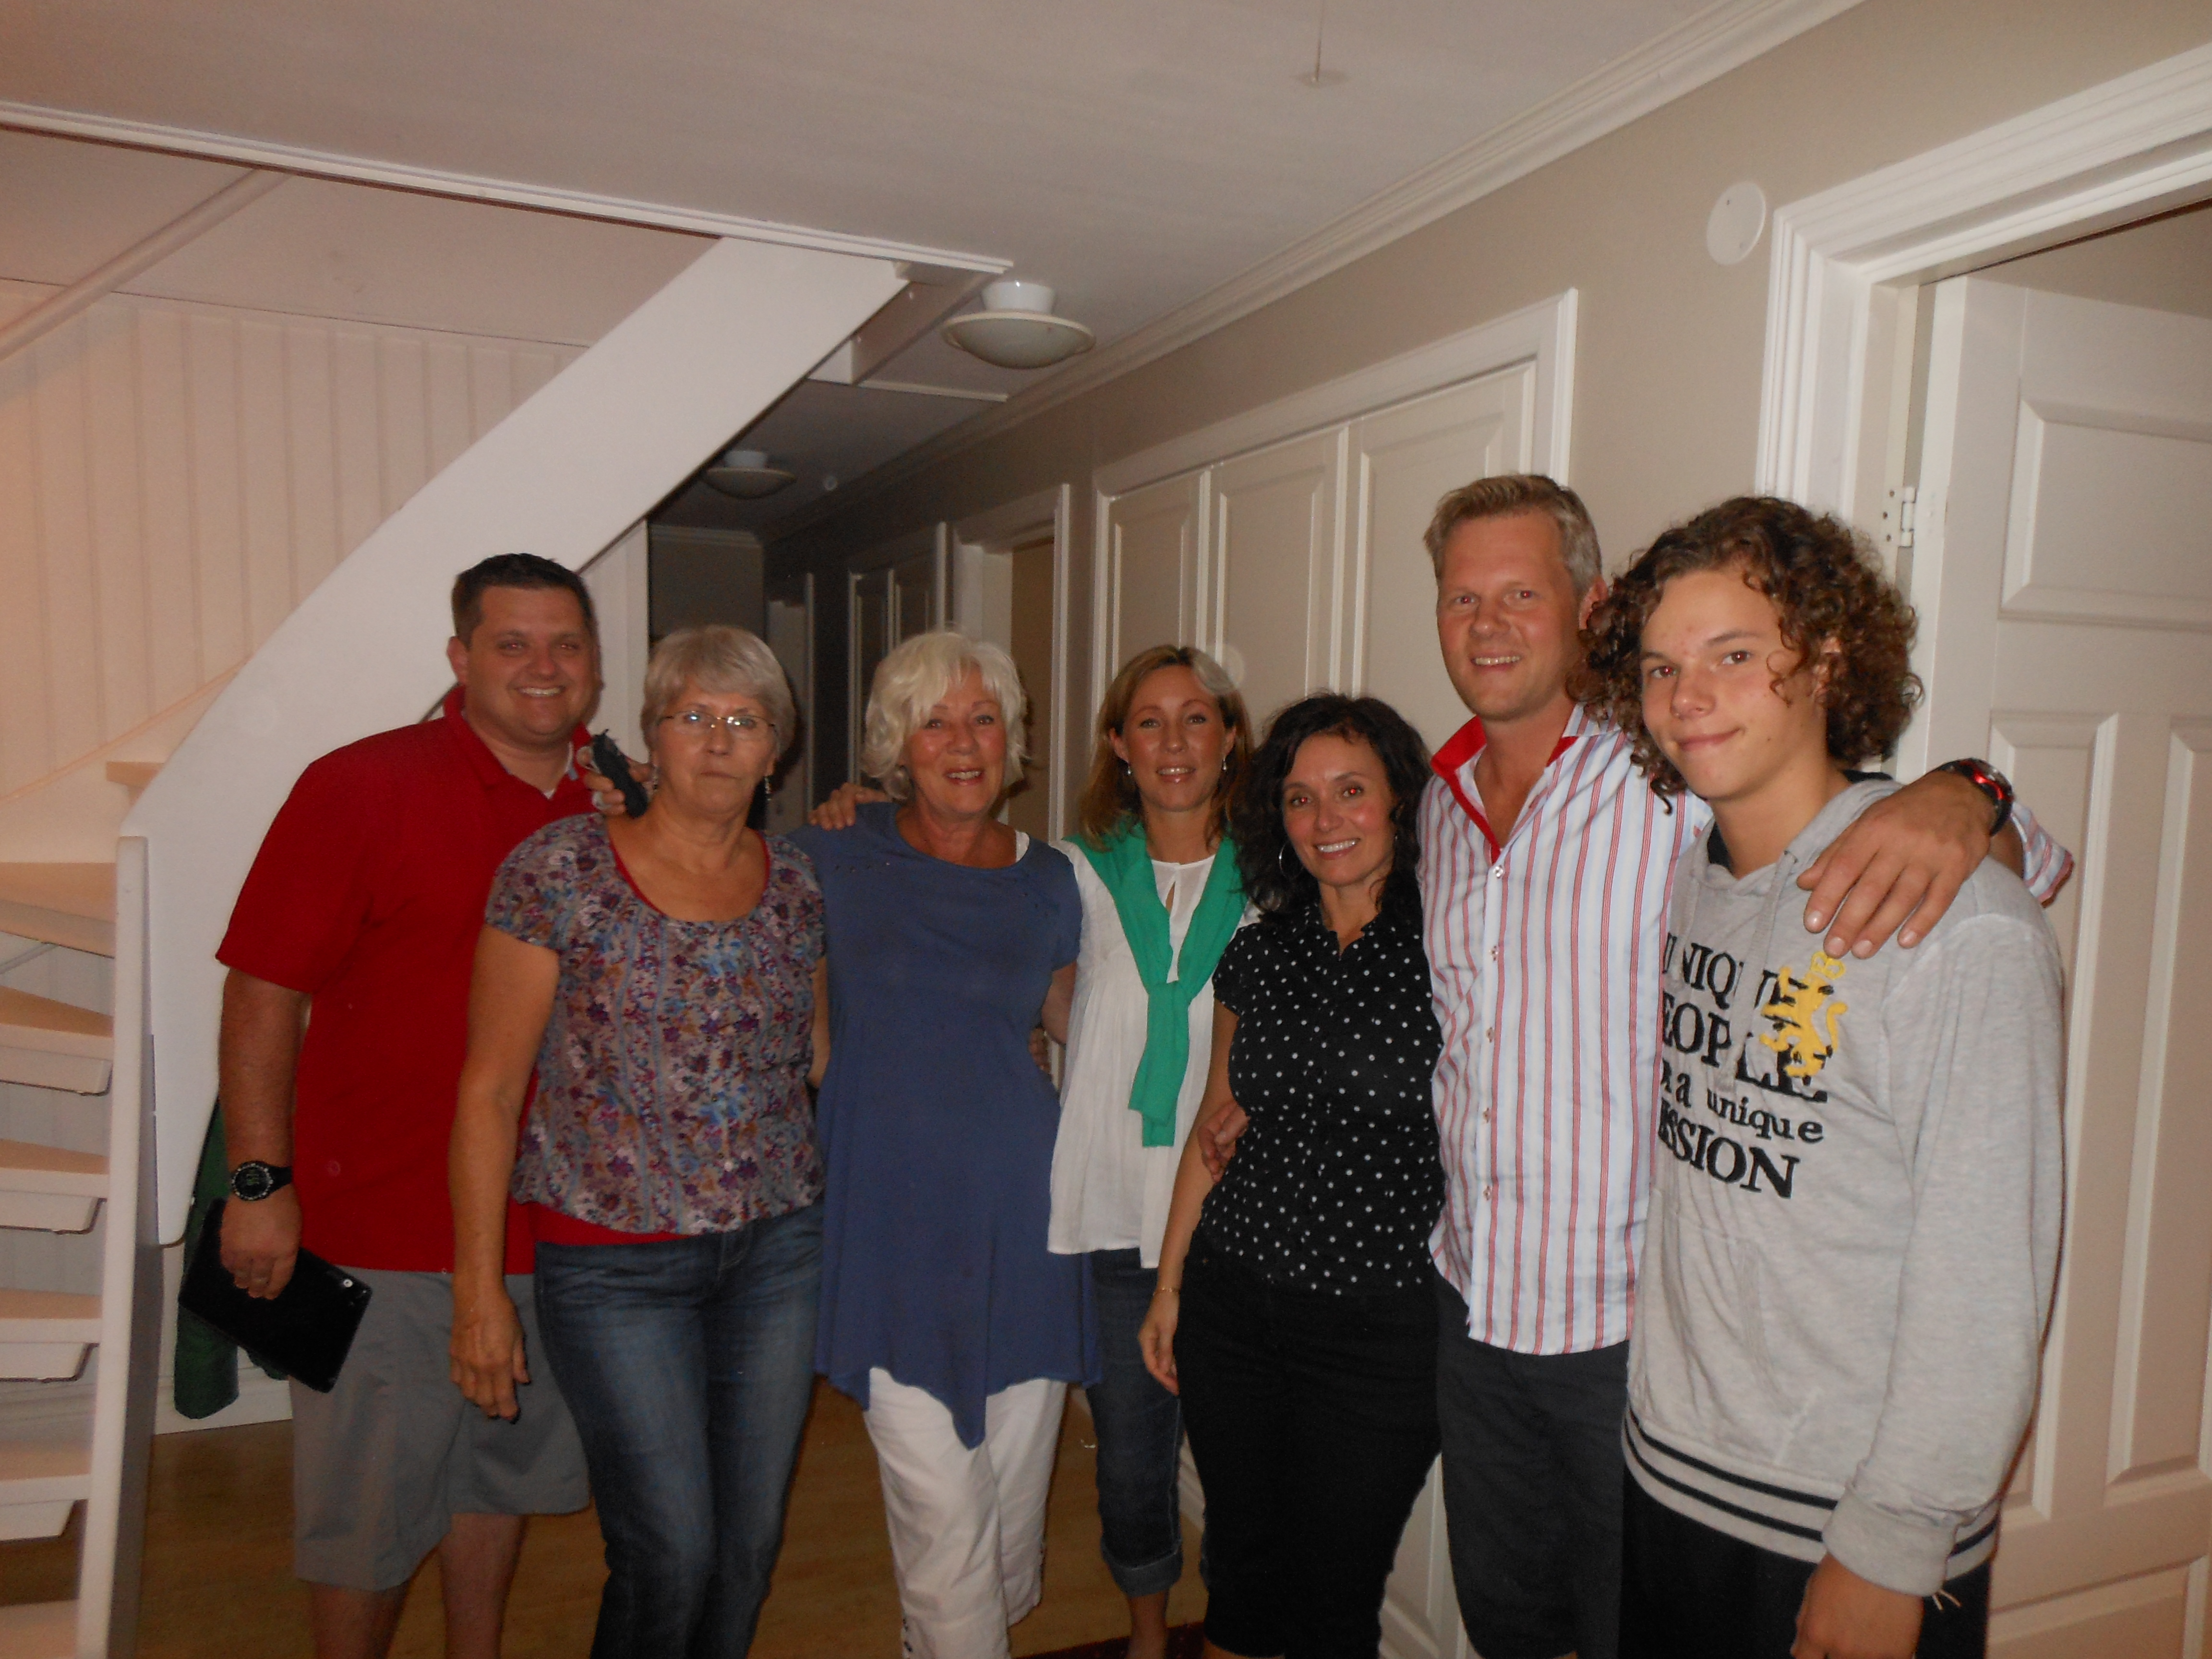 From left: James Farwell, Listbeth Pettersson Slater, Margareta Johansson Mattsson, Helen Mattsson, Cindia and Andreas Mattsson and their son. In 2013, the Slater family went to Sweden to visit the Mattsson family.